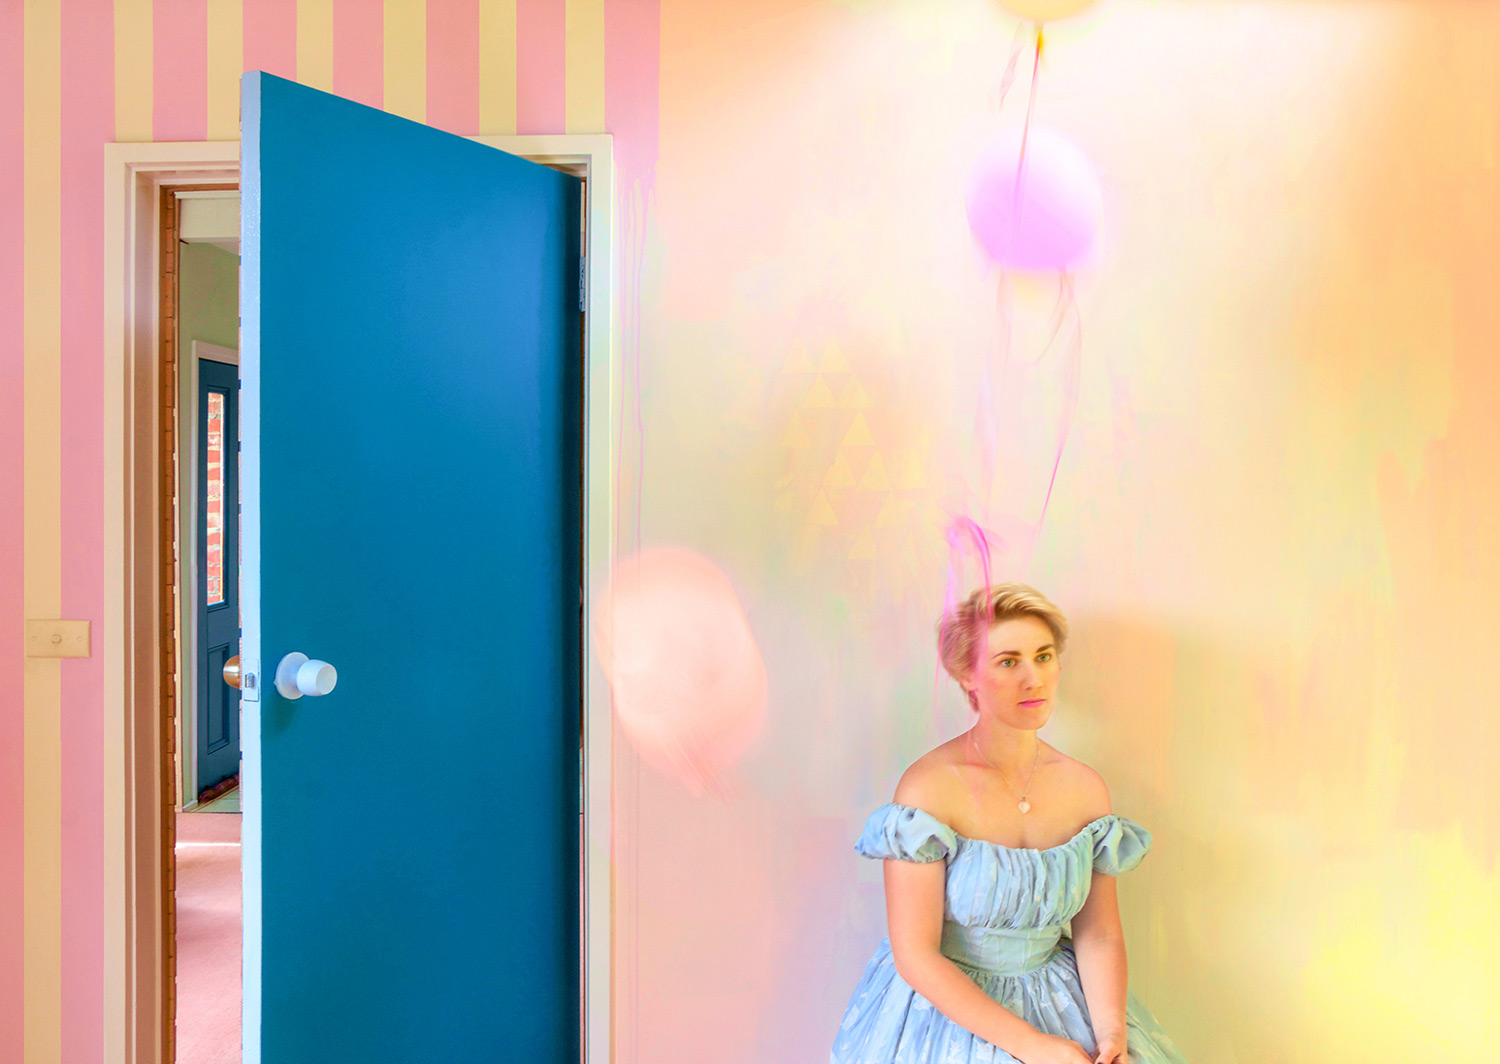 Alice in Wonderland theme styled interior featuring pastel abstract mural, candy striped walls, balloons and portrait of Alice seated staring wistfully off camera, wearing off the shoulder blue princess dress and short blonde hair.